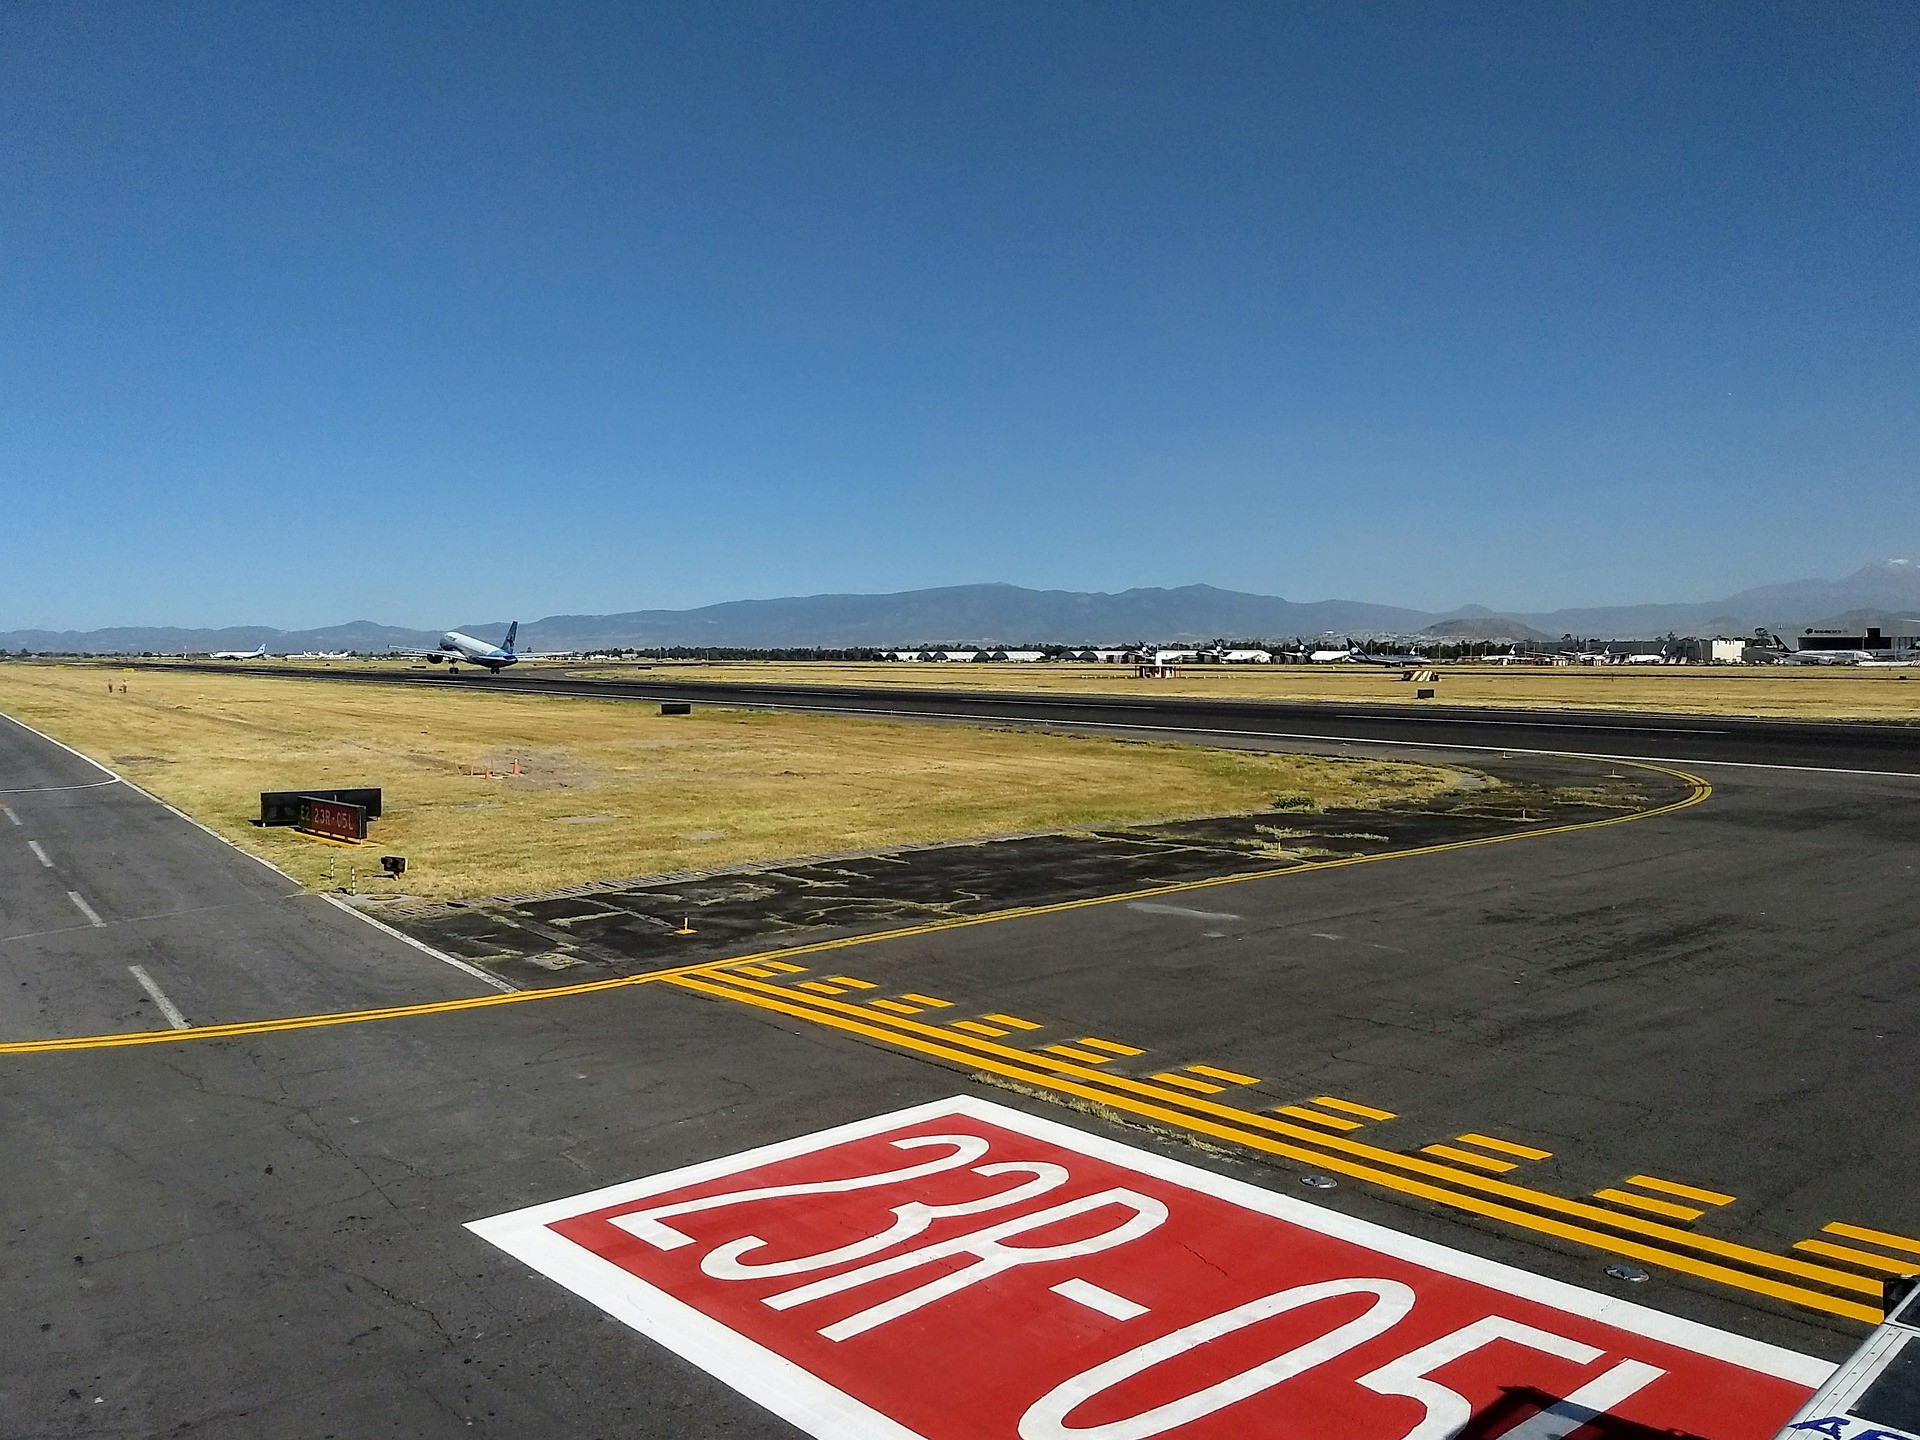 runway holding point